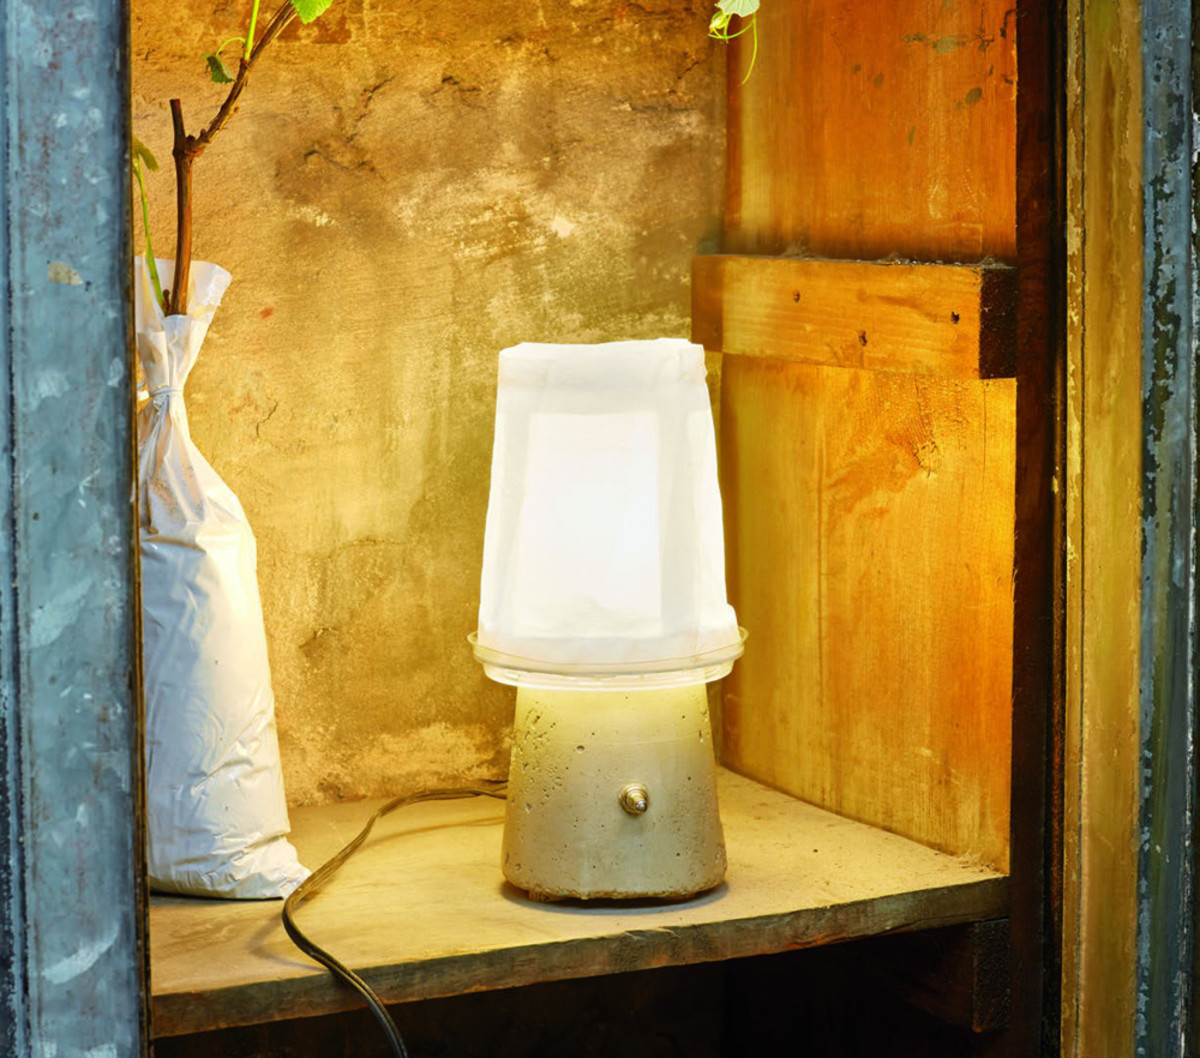 Guerrilla Furniture Design: How to Make Your Own DIY Yogurt Lamp